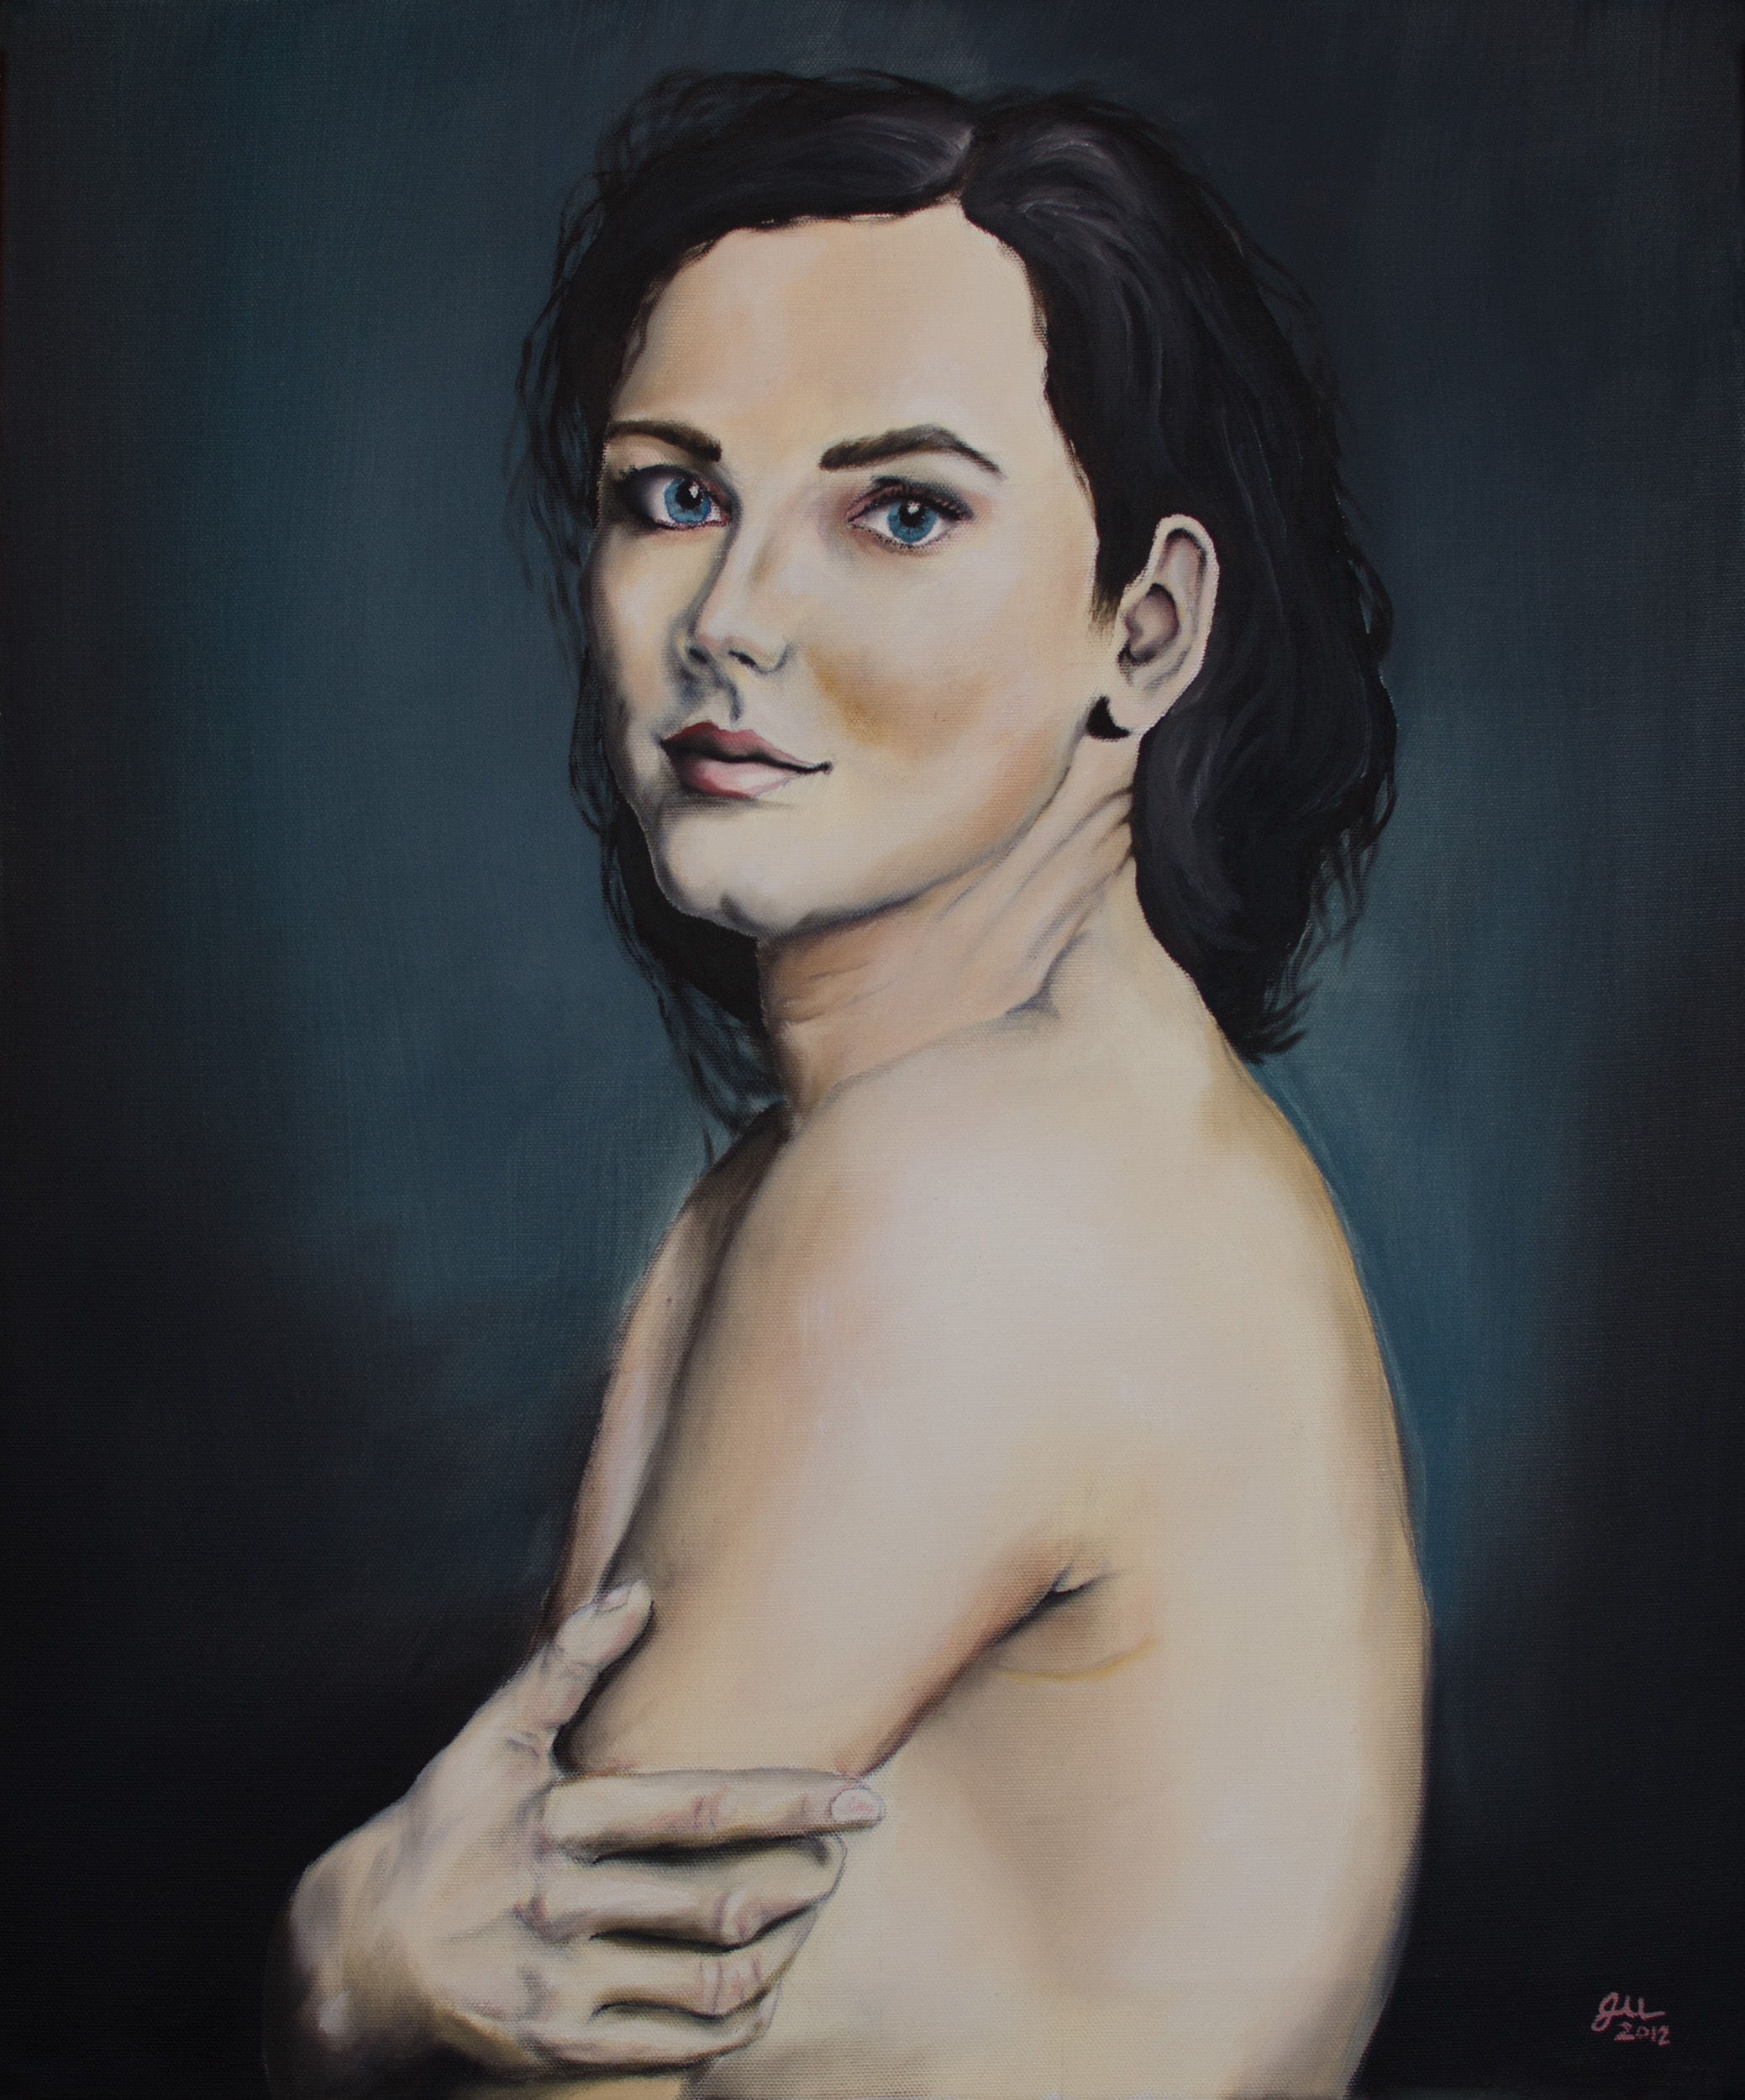 """UNTITLED   Oil on canvas, 20x24"""", 2012"""